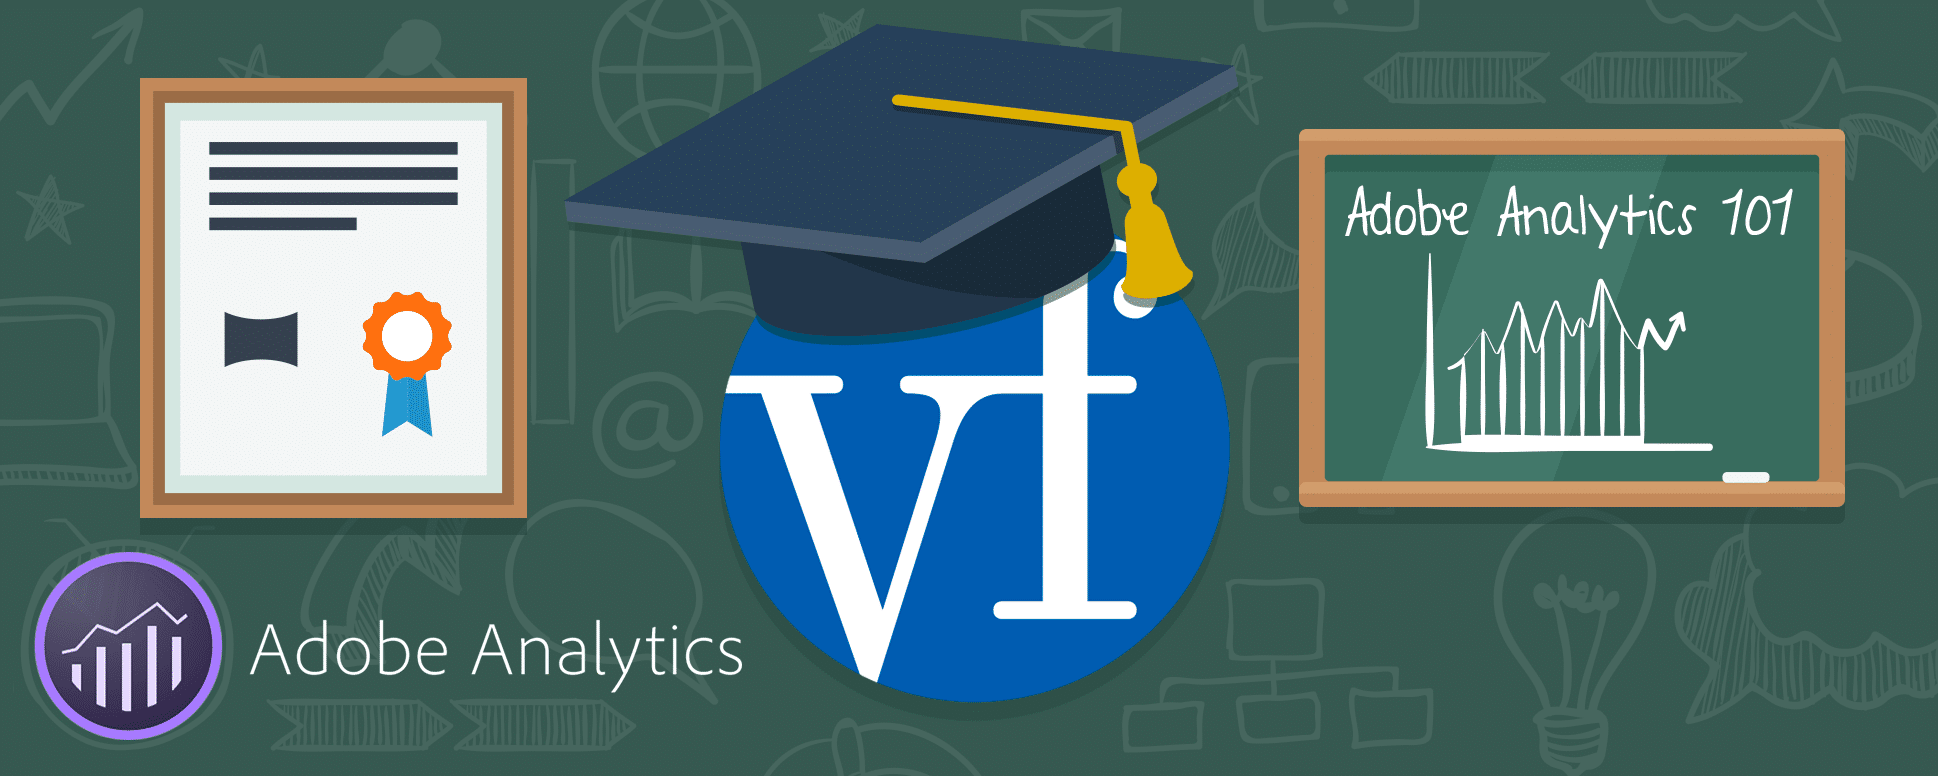 VF: Global Adobe Analytics Training Initiative Leads to Customer Insights